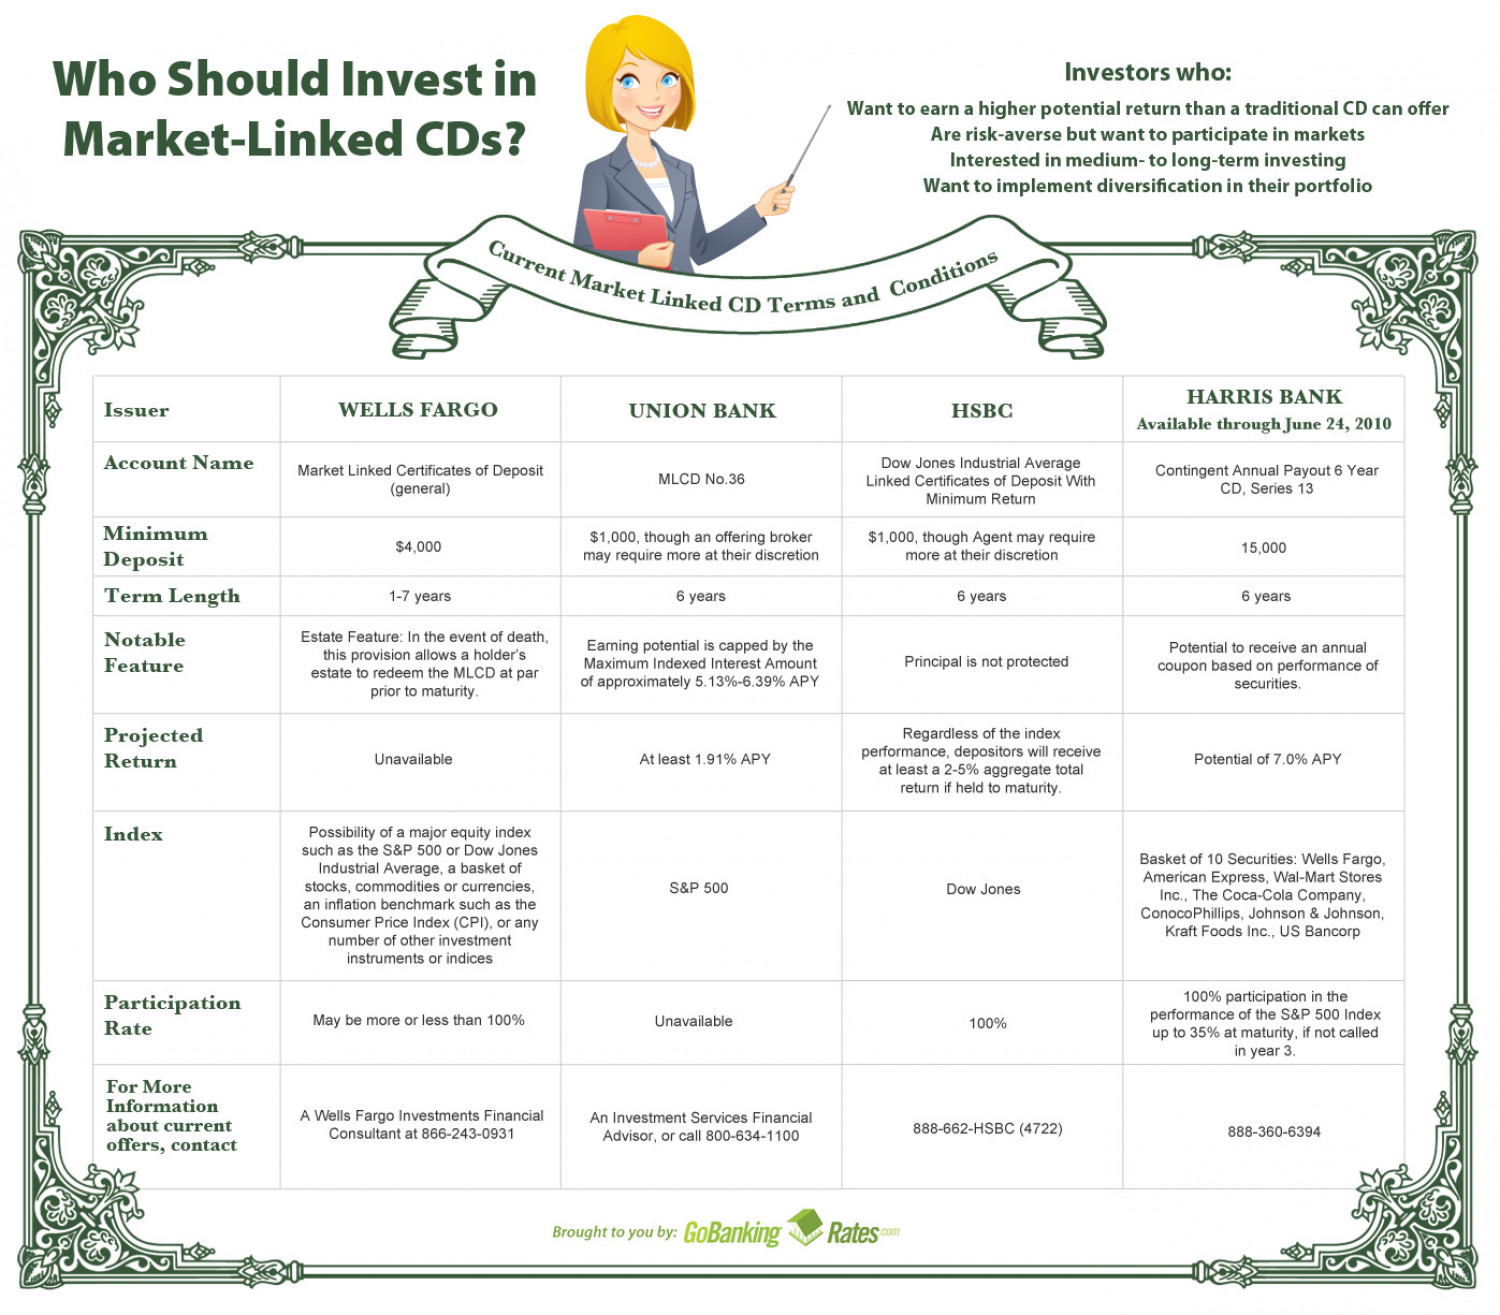 Who Should Invest in Market-Linked CDs?  Infographic